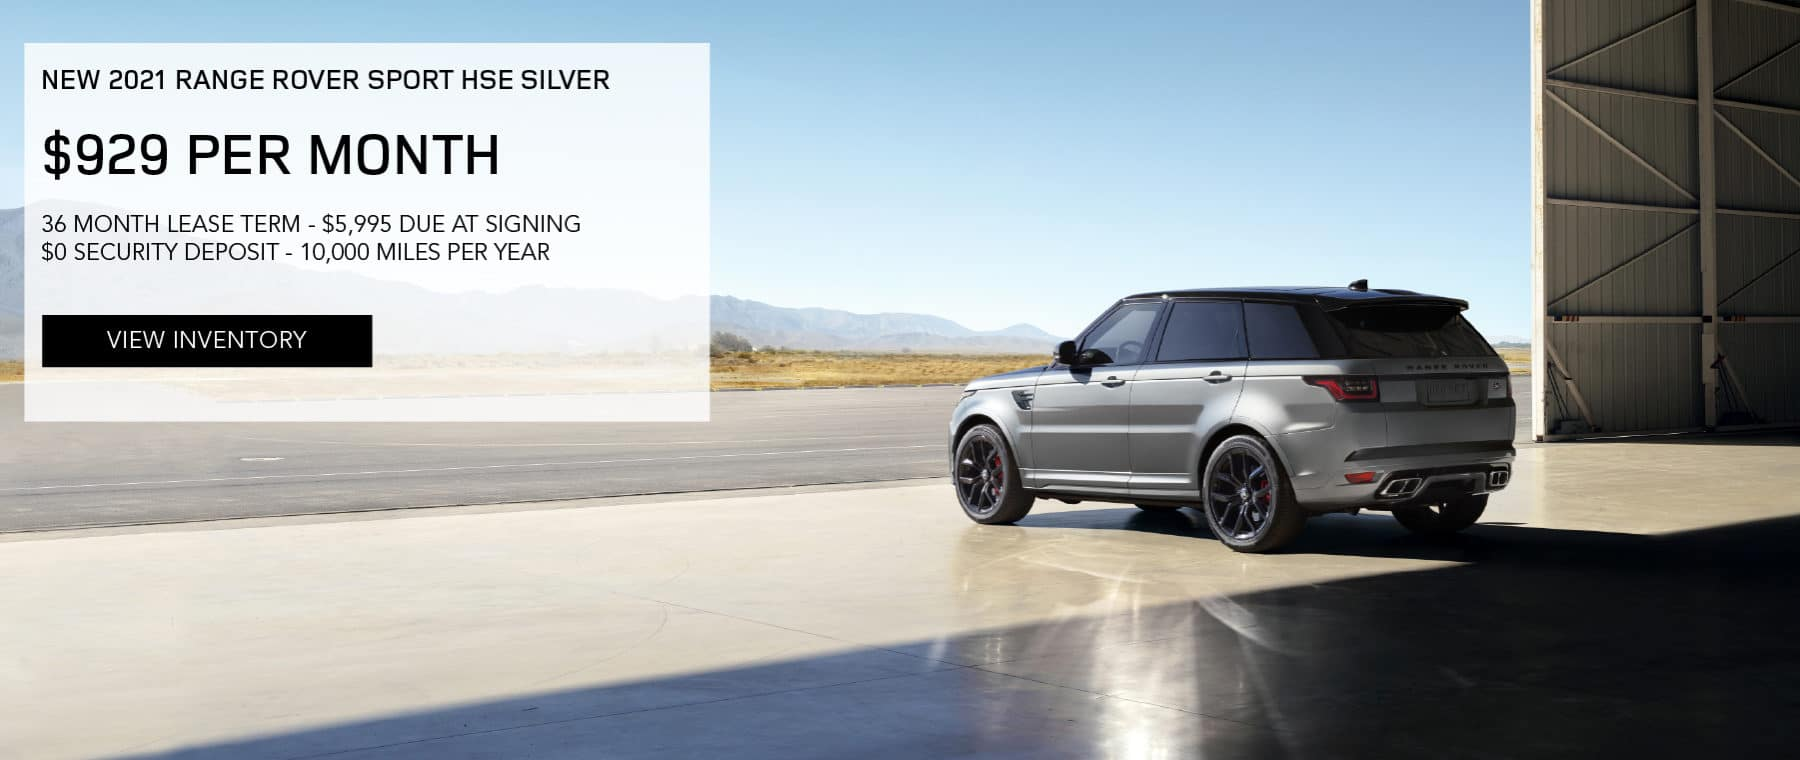 NEW 2021 RANGE ROVER SPORT HSE SILVER. $929 PER MONTH. 36 MONTH LEASE TERM. $5,995 CASH DUE AT SIGNING. $0 SECURITY DEPOSIT. 10,000 MILES PER YEAR. EXCLUDES RETAILER FEES, TAXES, TITLE AND REGISTRATION FEES, PROCESSING FEE AND ANY EMISSION TESTING CHARGE. ENDS 4/30/2021. VIEW INVENTORY. SILVER RANGE ROVER SPORT DRIVING THROUGH DESERT.